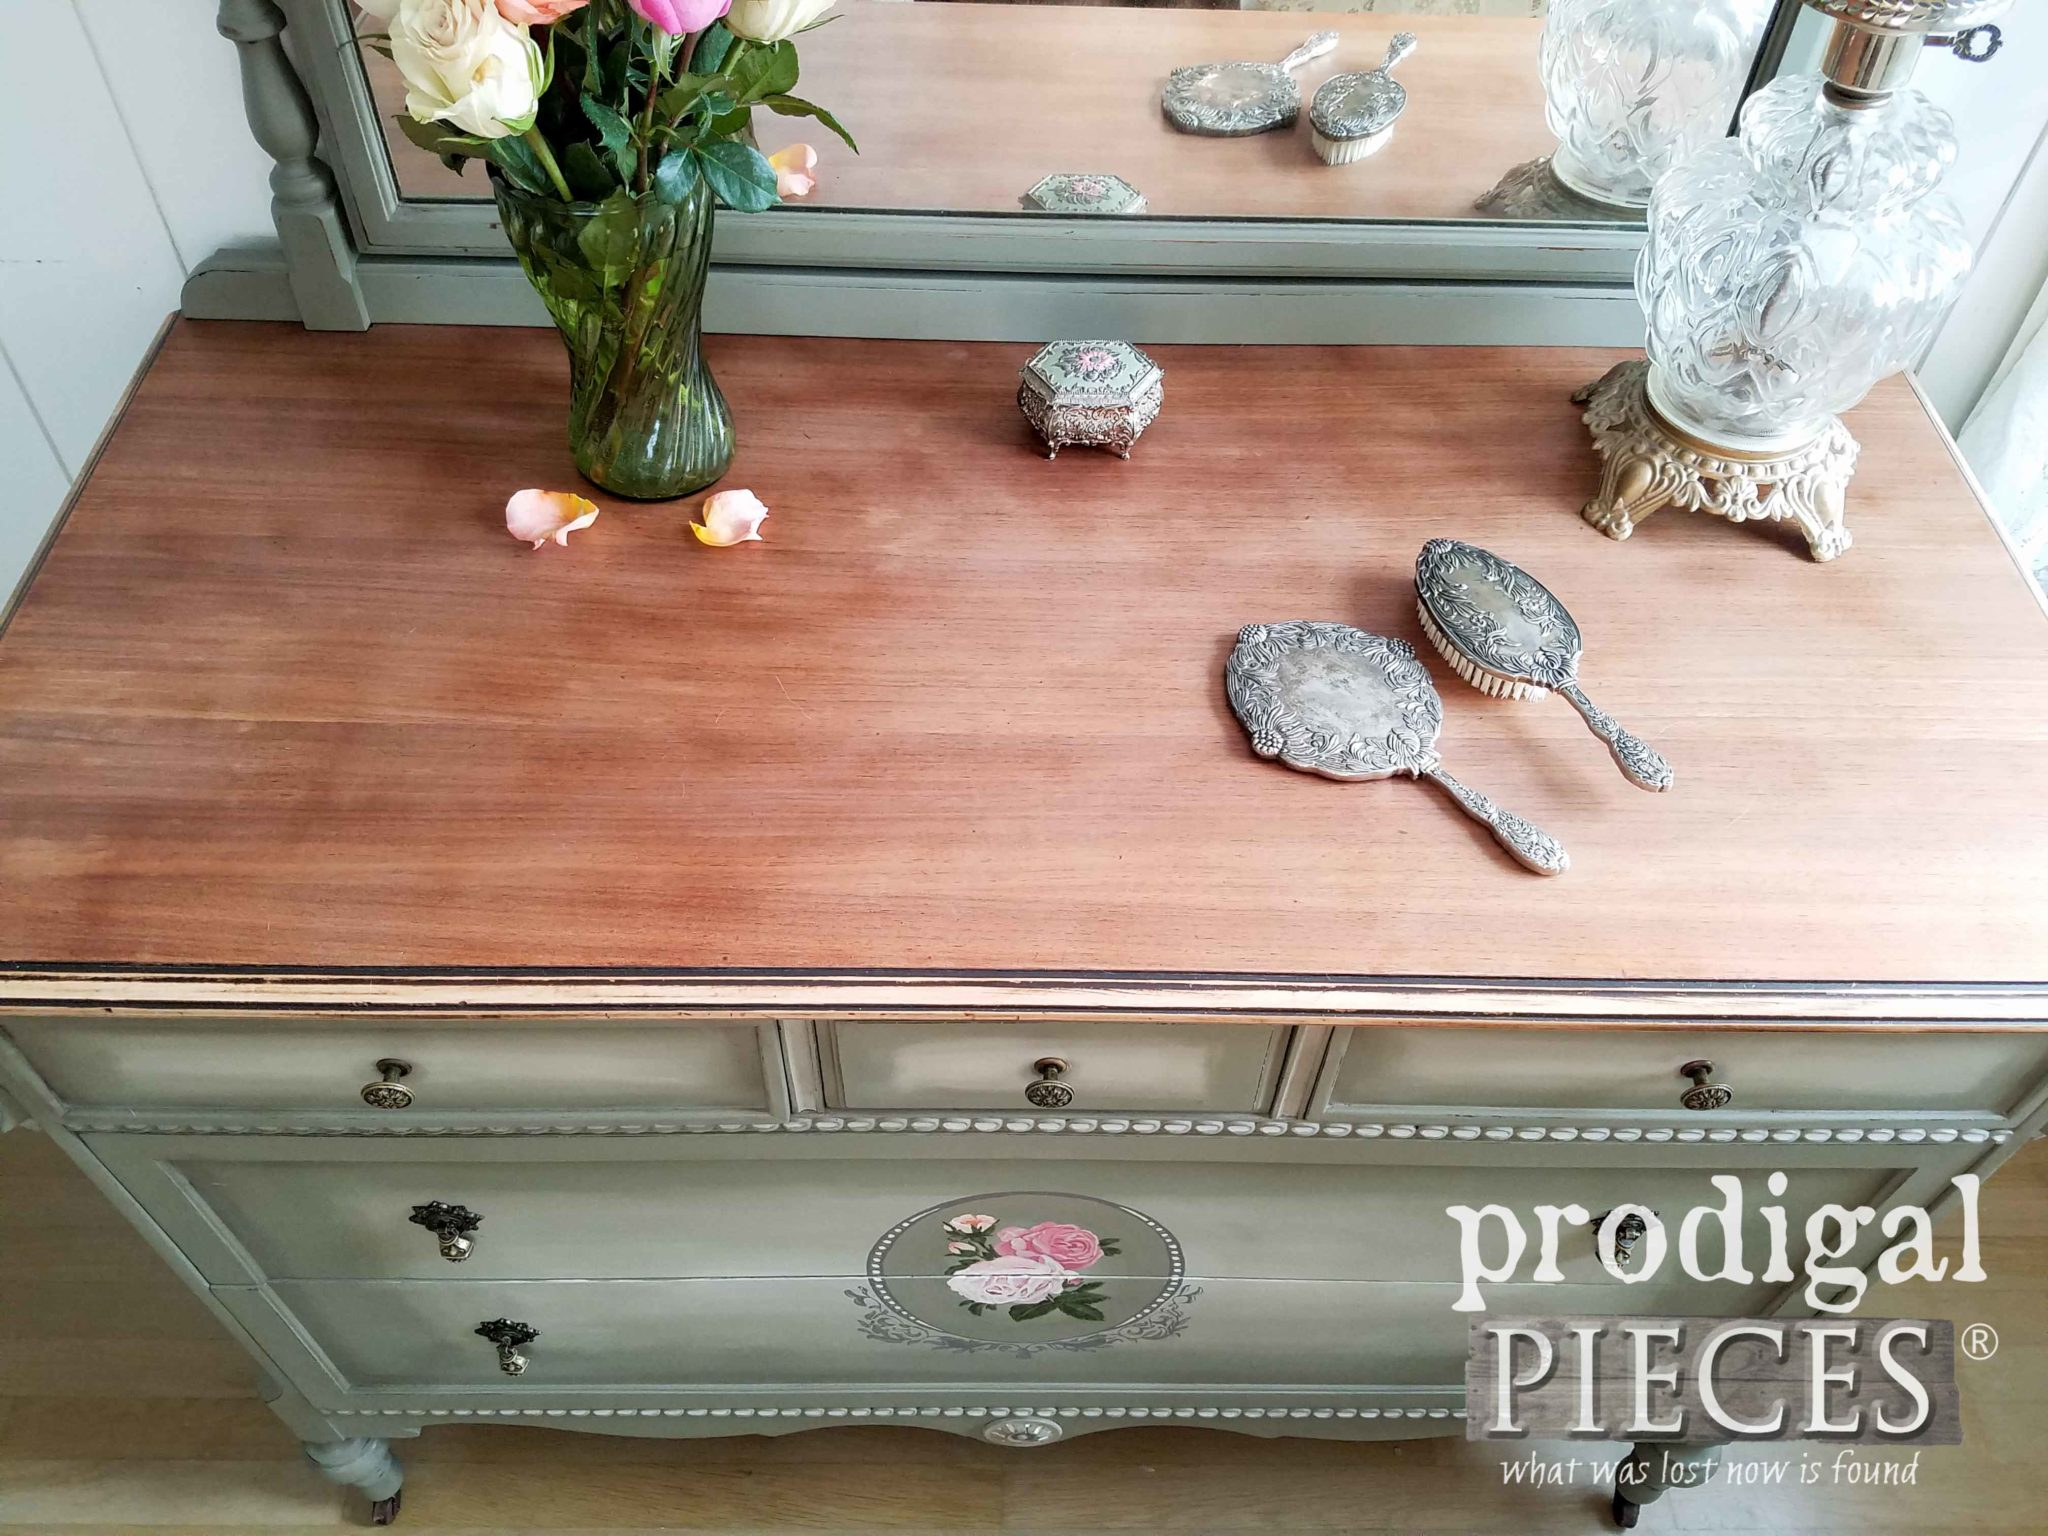 Antique Dresser Top Refinished | prodigalpieces.com